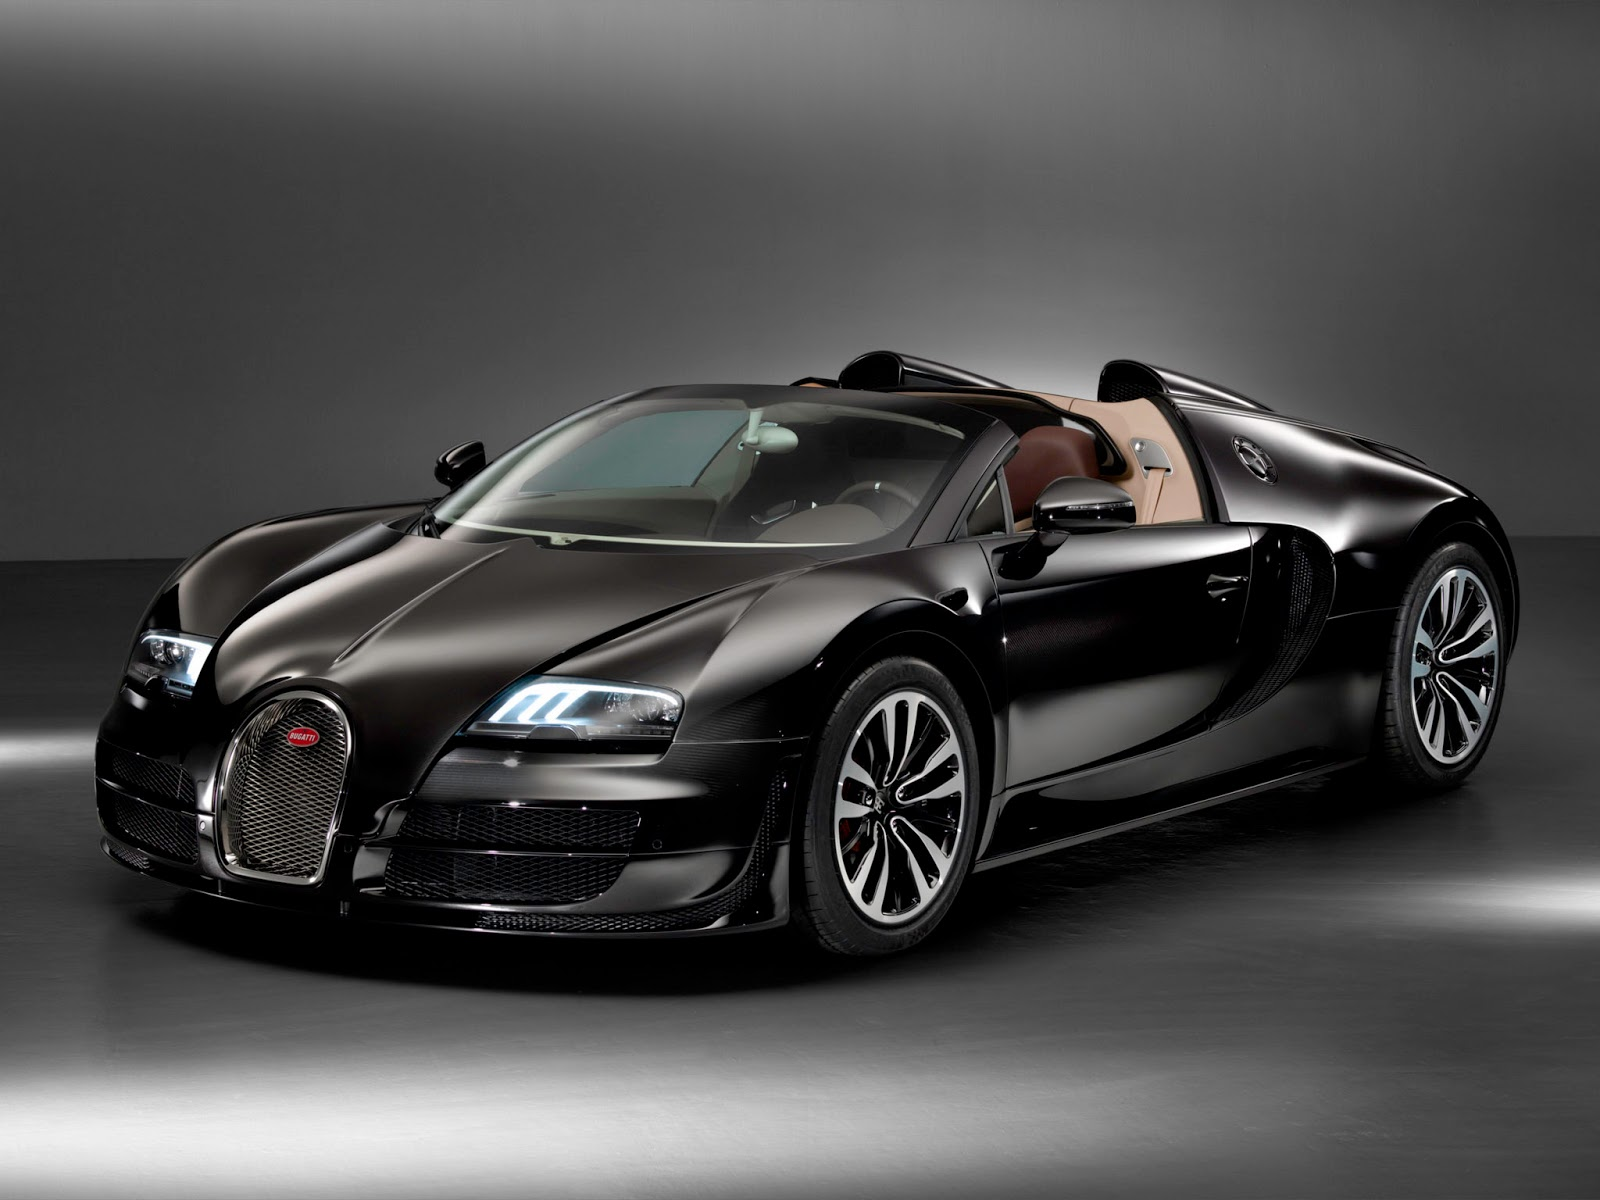 conhe a o mundo dos carros sal o de frankfurt 2013 bugatti veyron grand sport vitesse 39 jean. Black Bedroom Furniture Sets. Home Design Ideas